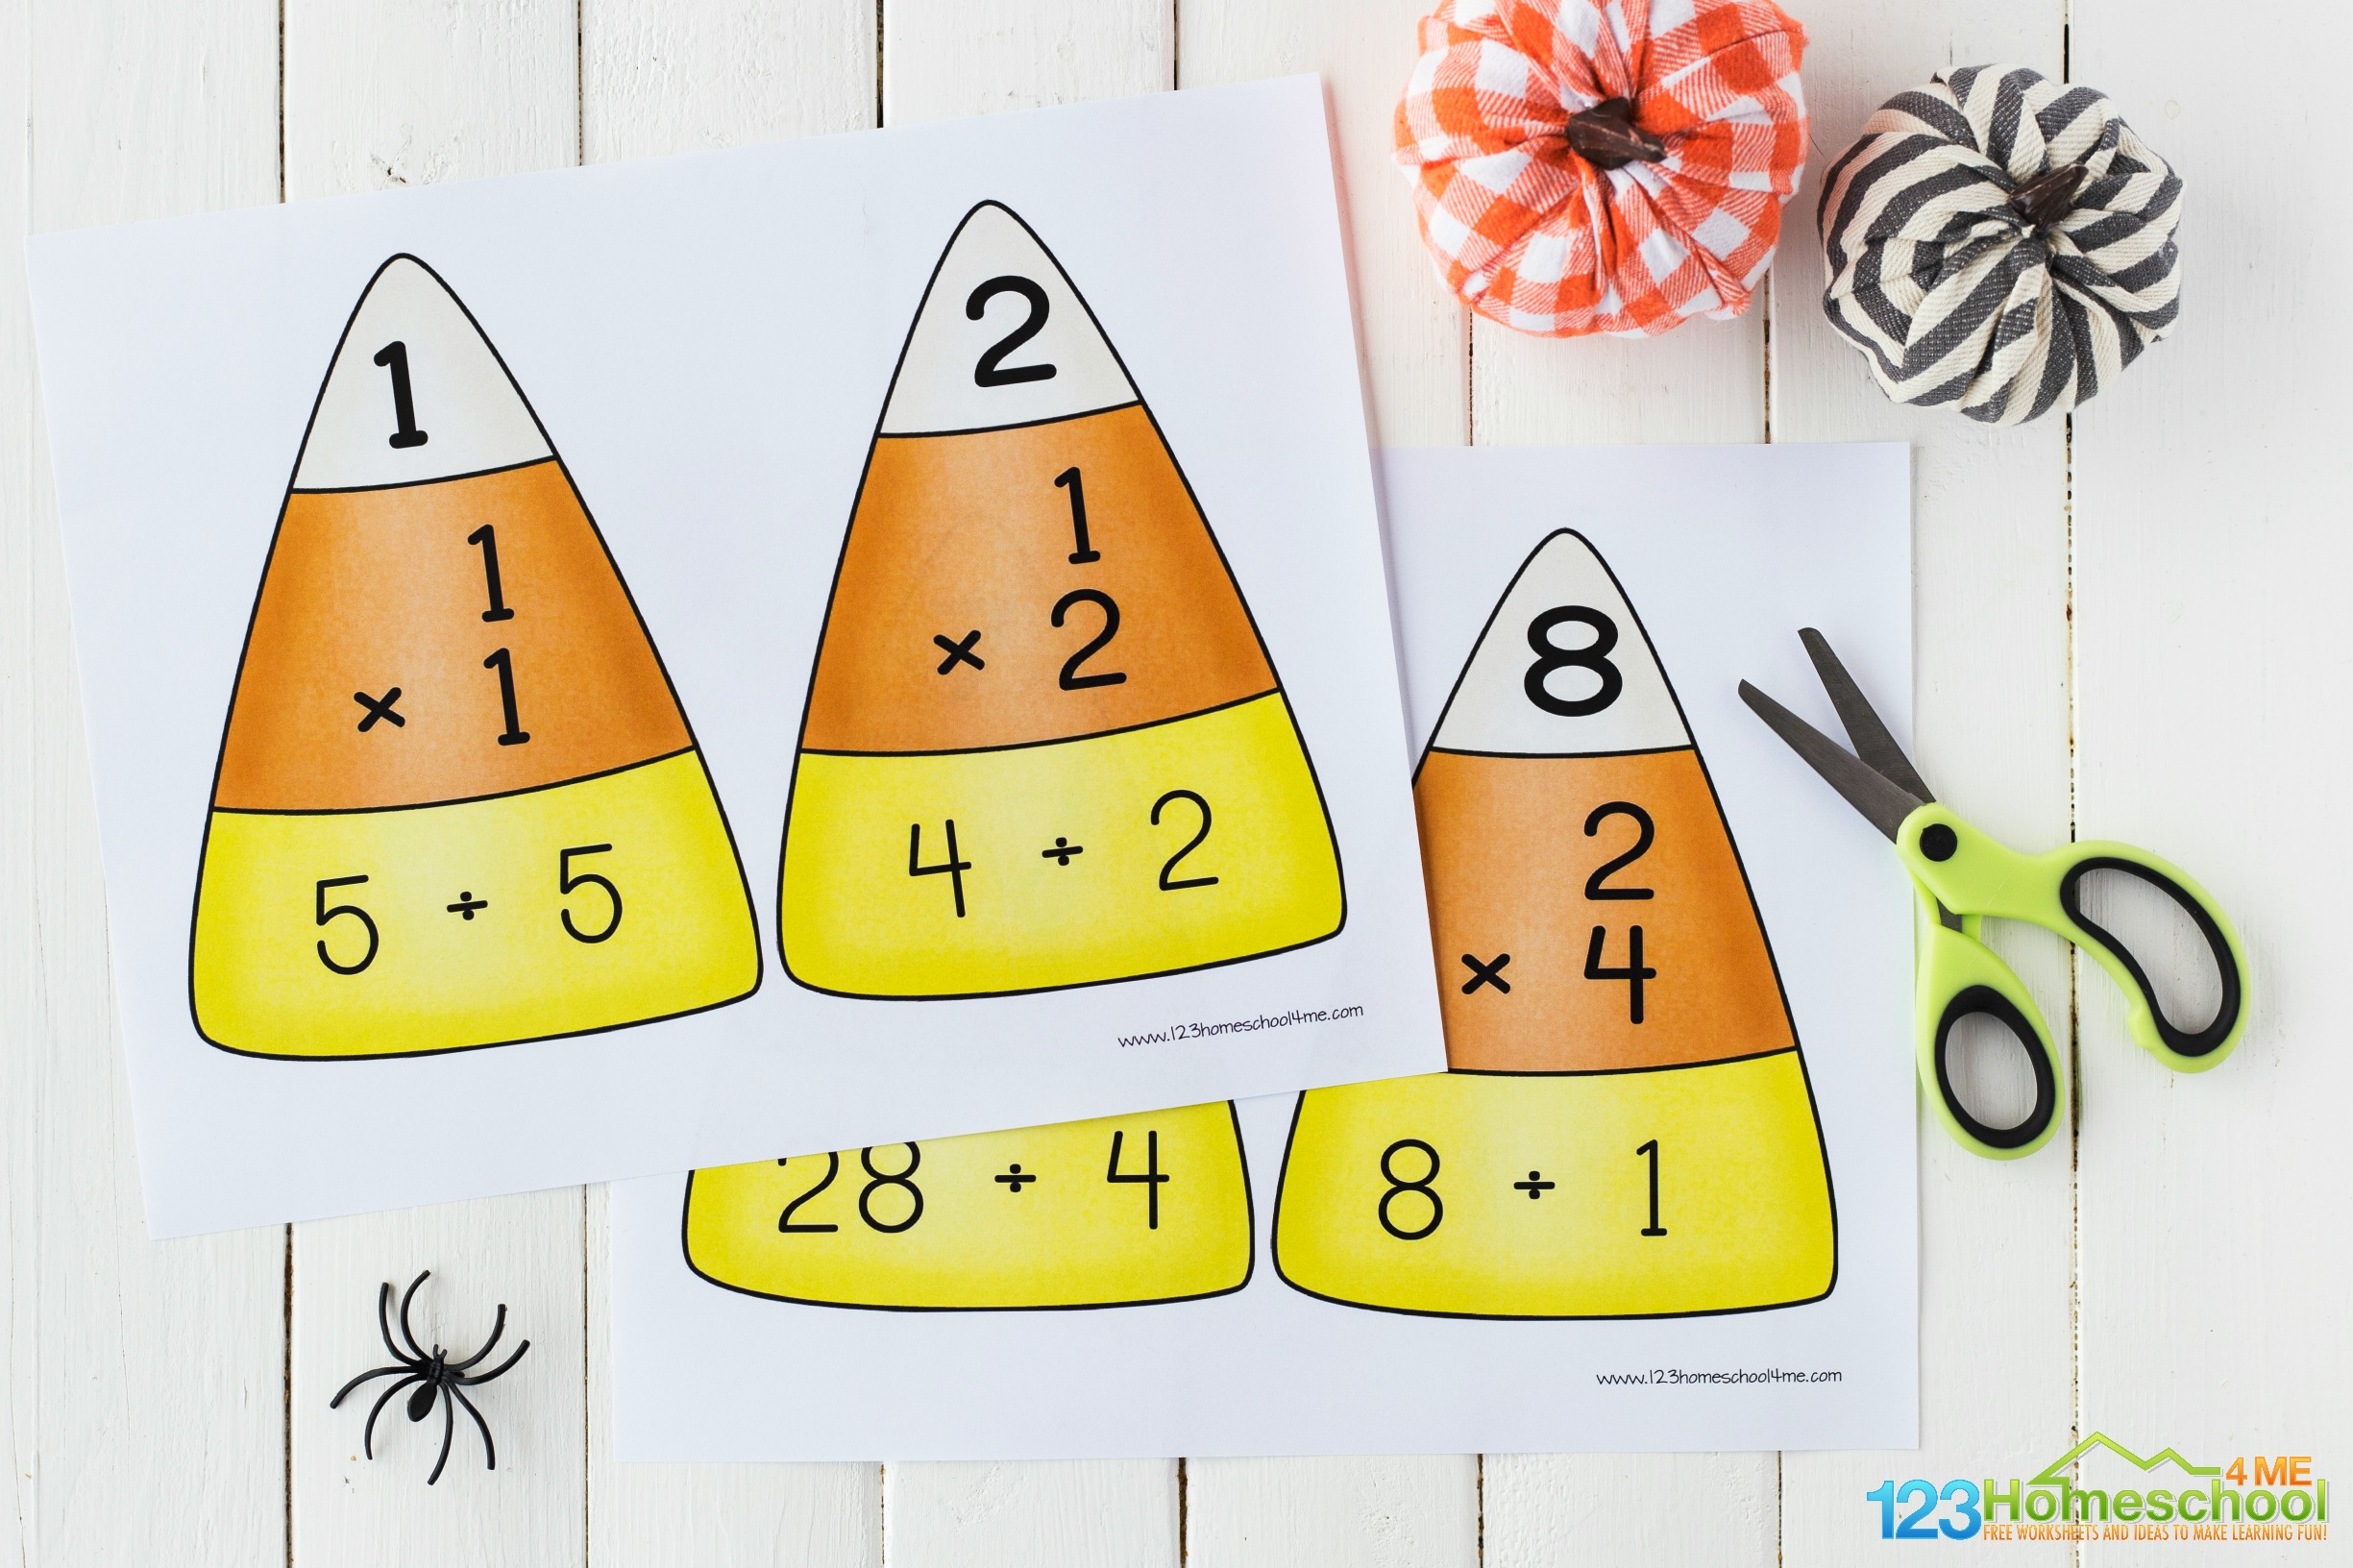 free Candy Corn Multiplication puzzles for 3rd grade, 4th grade, 5th grade, and 6th grade to practice multiplication facts in October as a Halloween themed math activity or math center